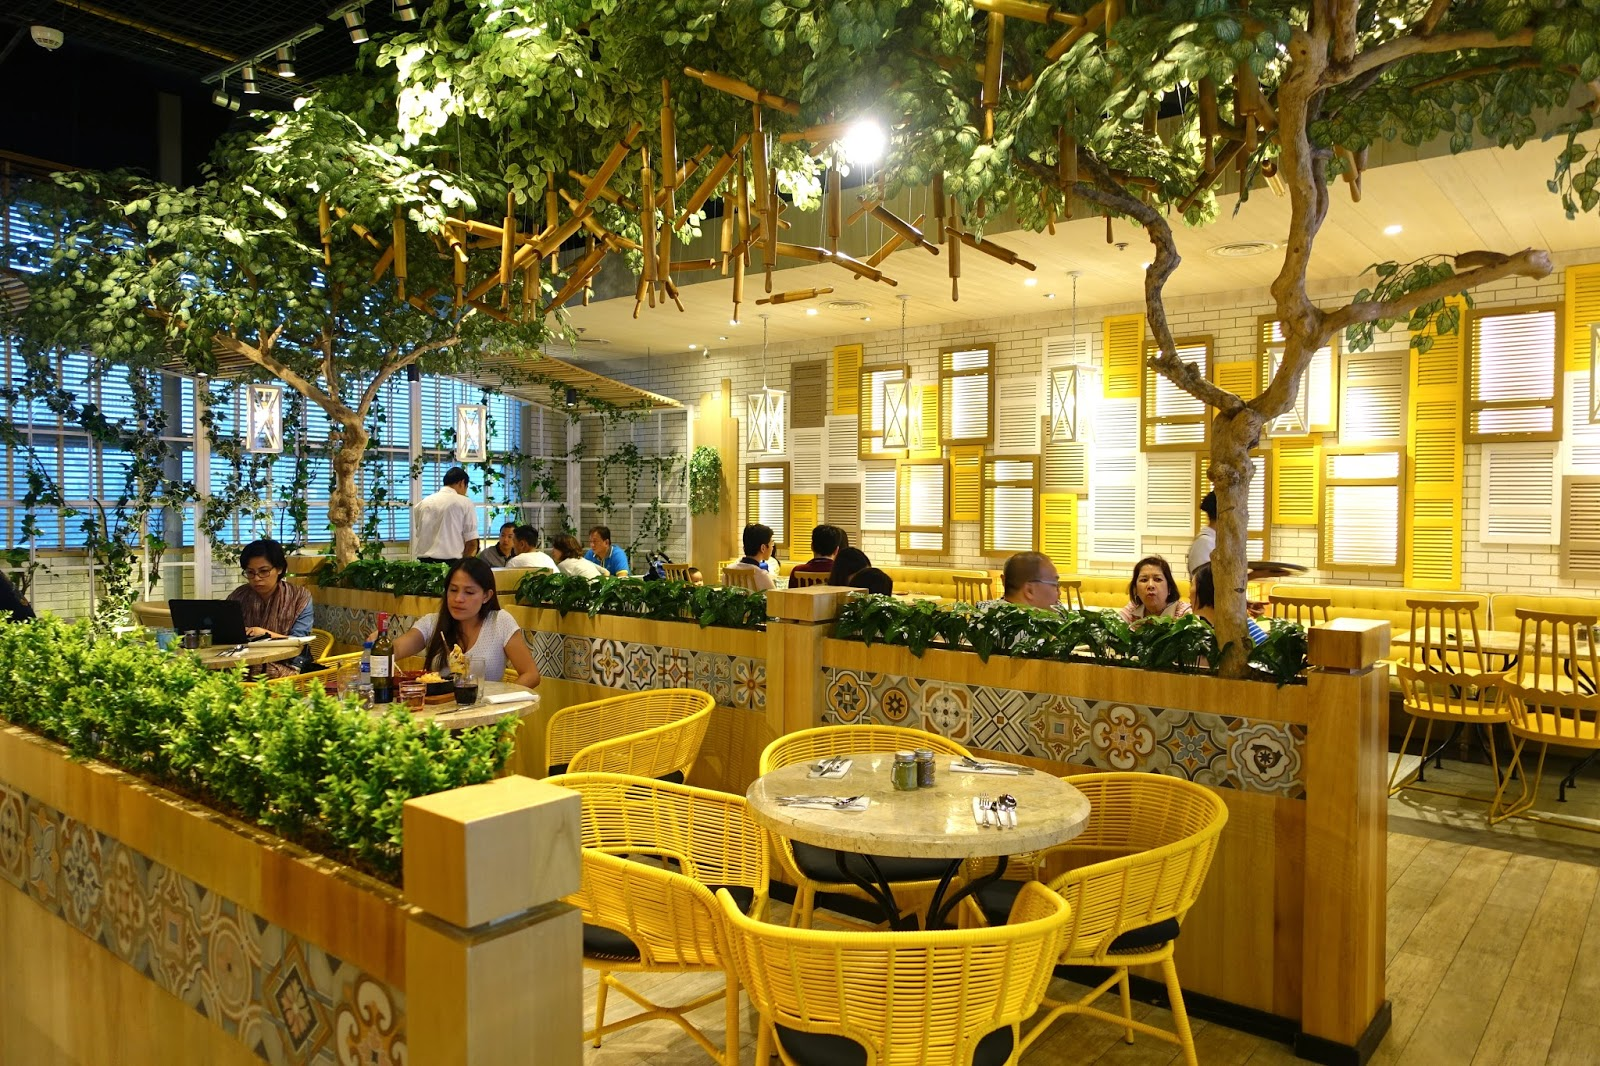 The whimsical interiors of Le Petit Souffle